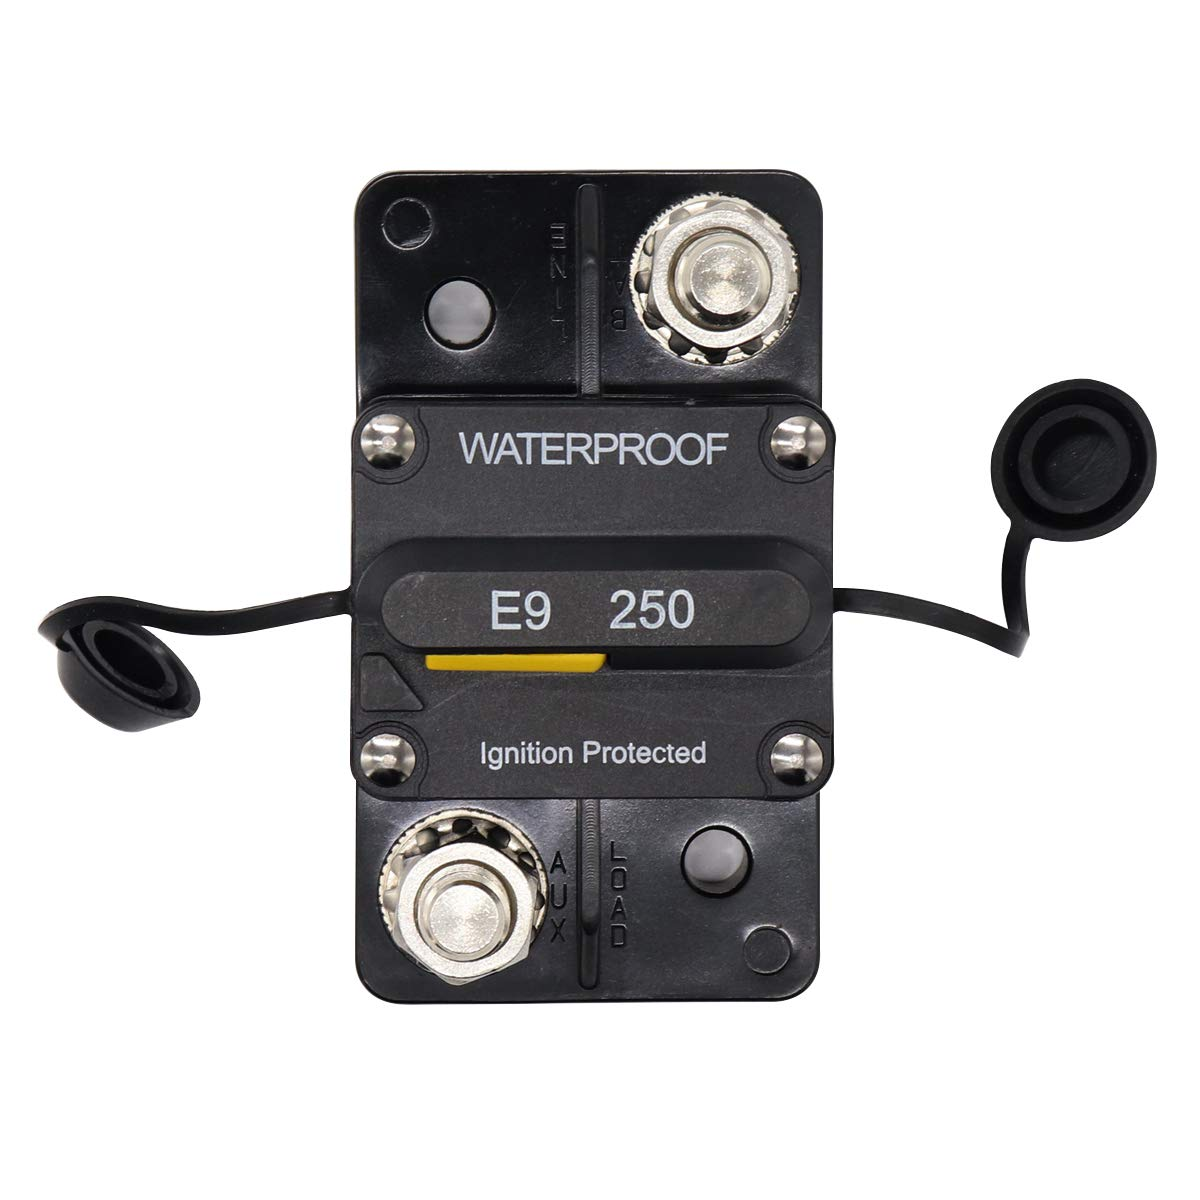 250 Amp Surface-Mount Circuit Breakers with Manual Reset, 12V- 48V DC, Waterproof